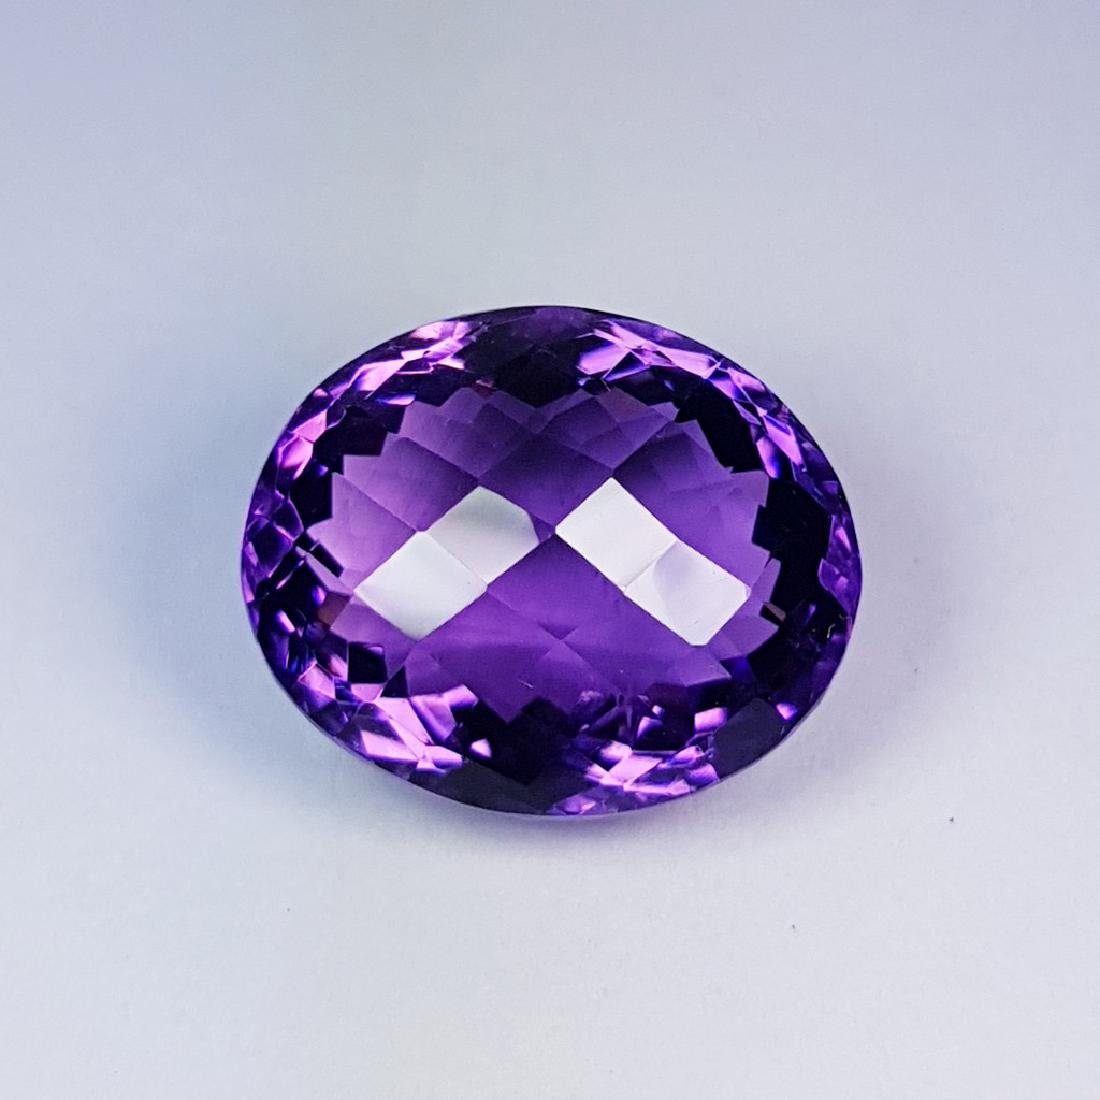 Natural Amethyst - 15.88 ct - 4